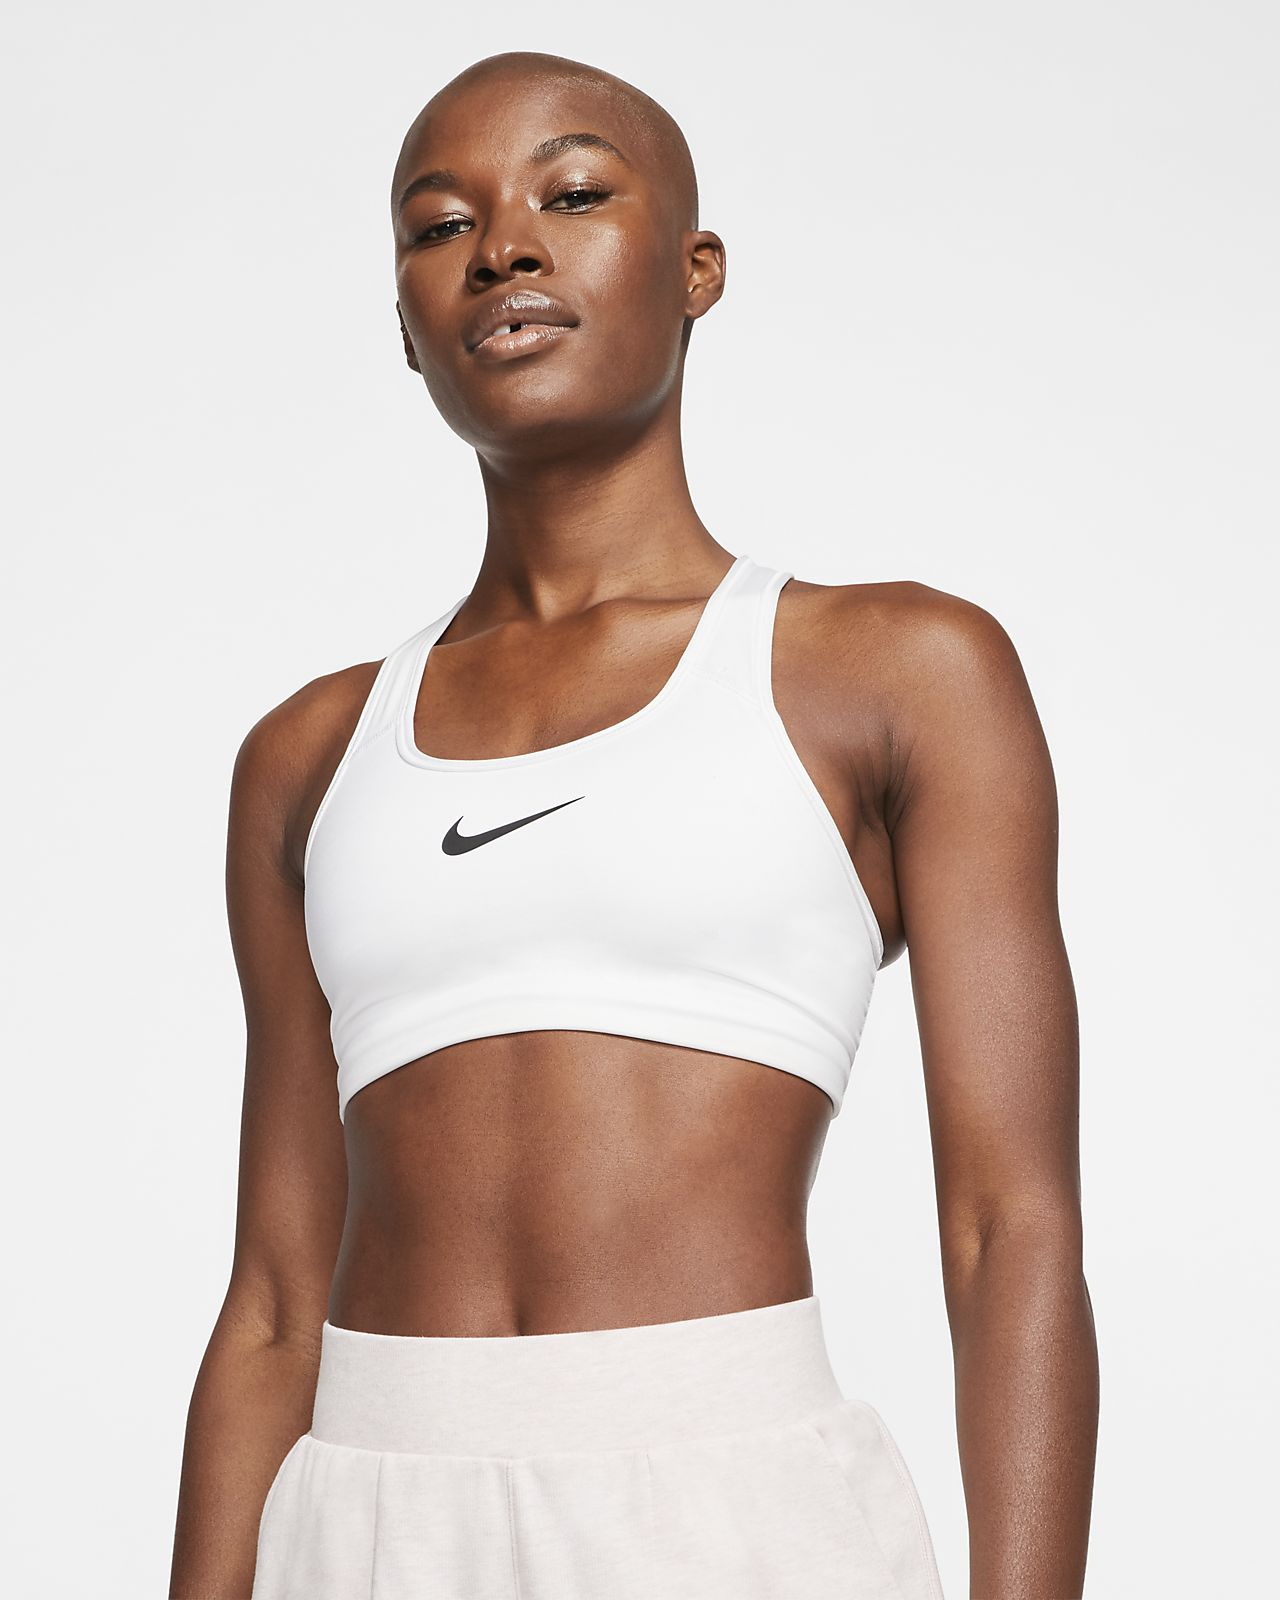 6a83d00d9 Nike Women s Swoosh Medium-Support Sports Bra. Nike.com LU